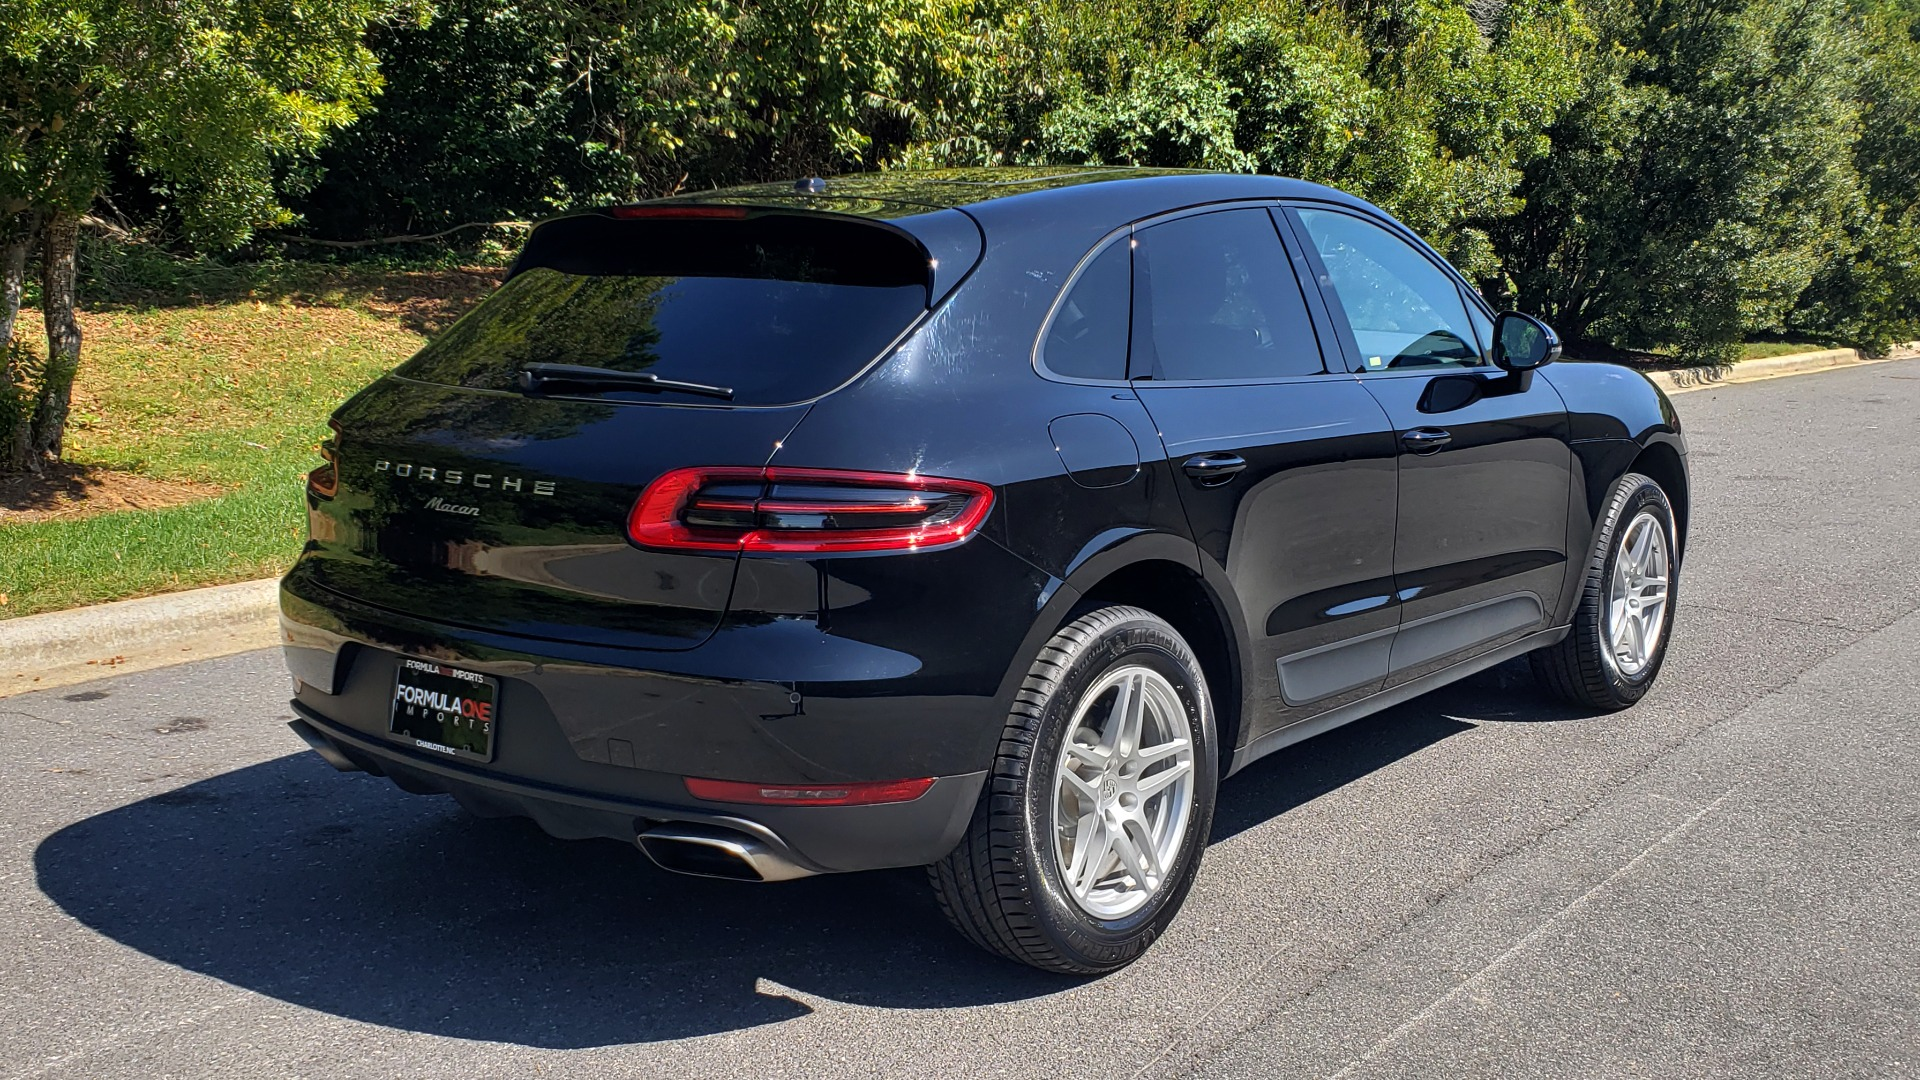 Used 2018 Porsche MACAN PREMIUM PKG PLUS / NAV / PDK / BOSE / REARVIEW for sale Sold at Formula Imports in Charlotte NC 28227 8